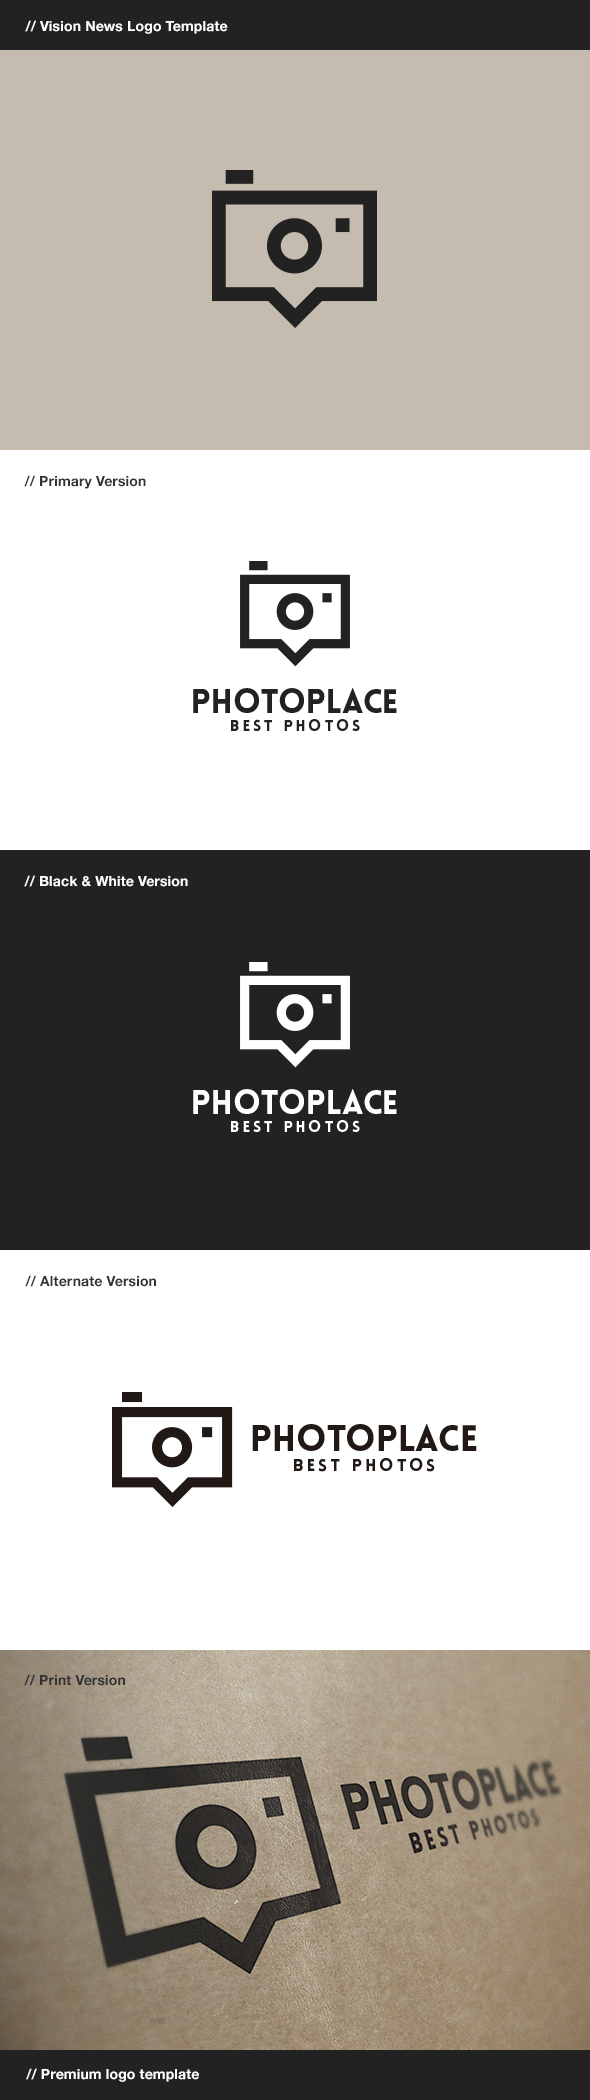 GraphicRiver Photo Place 7934292